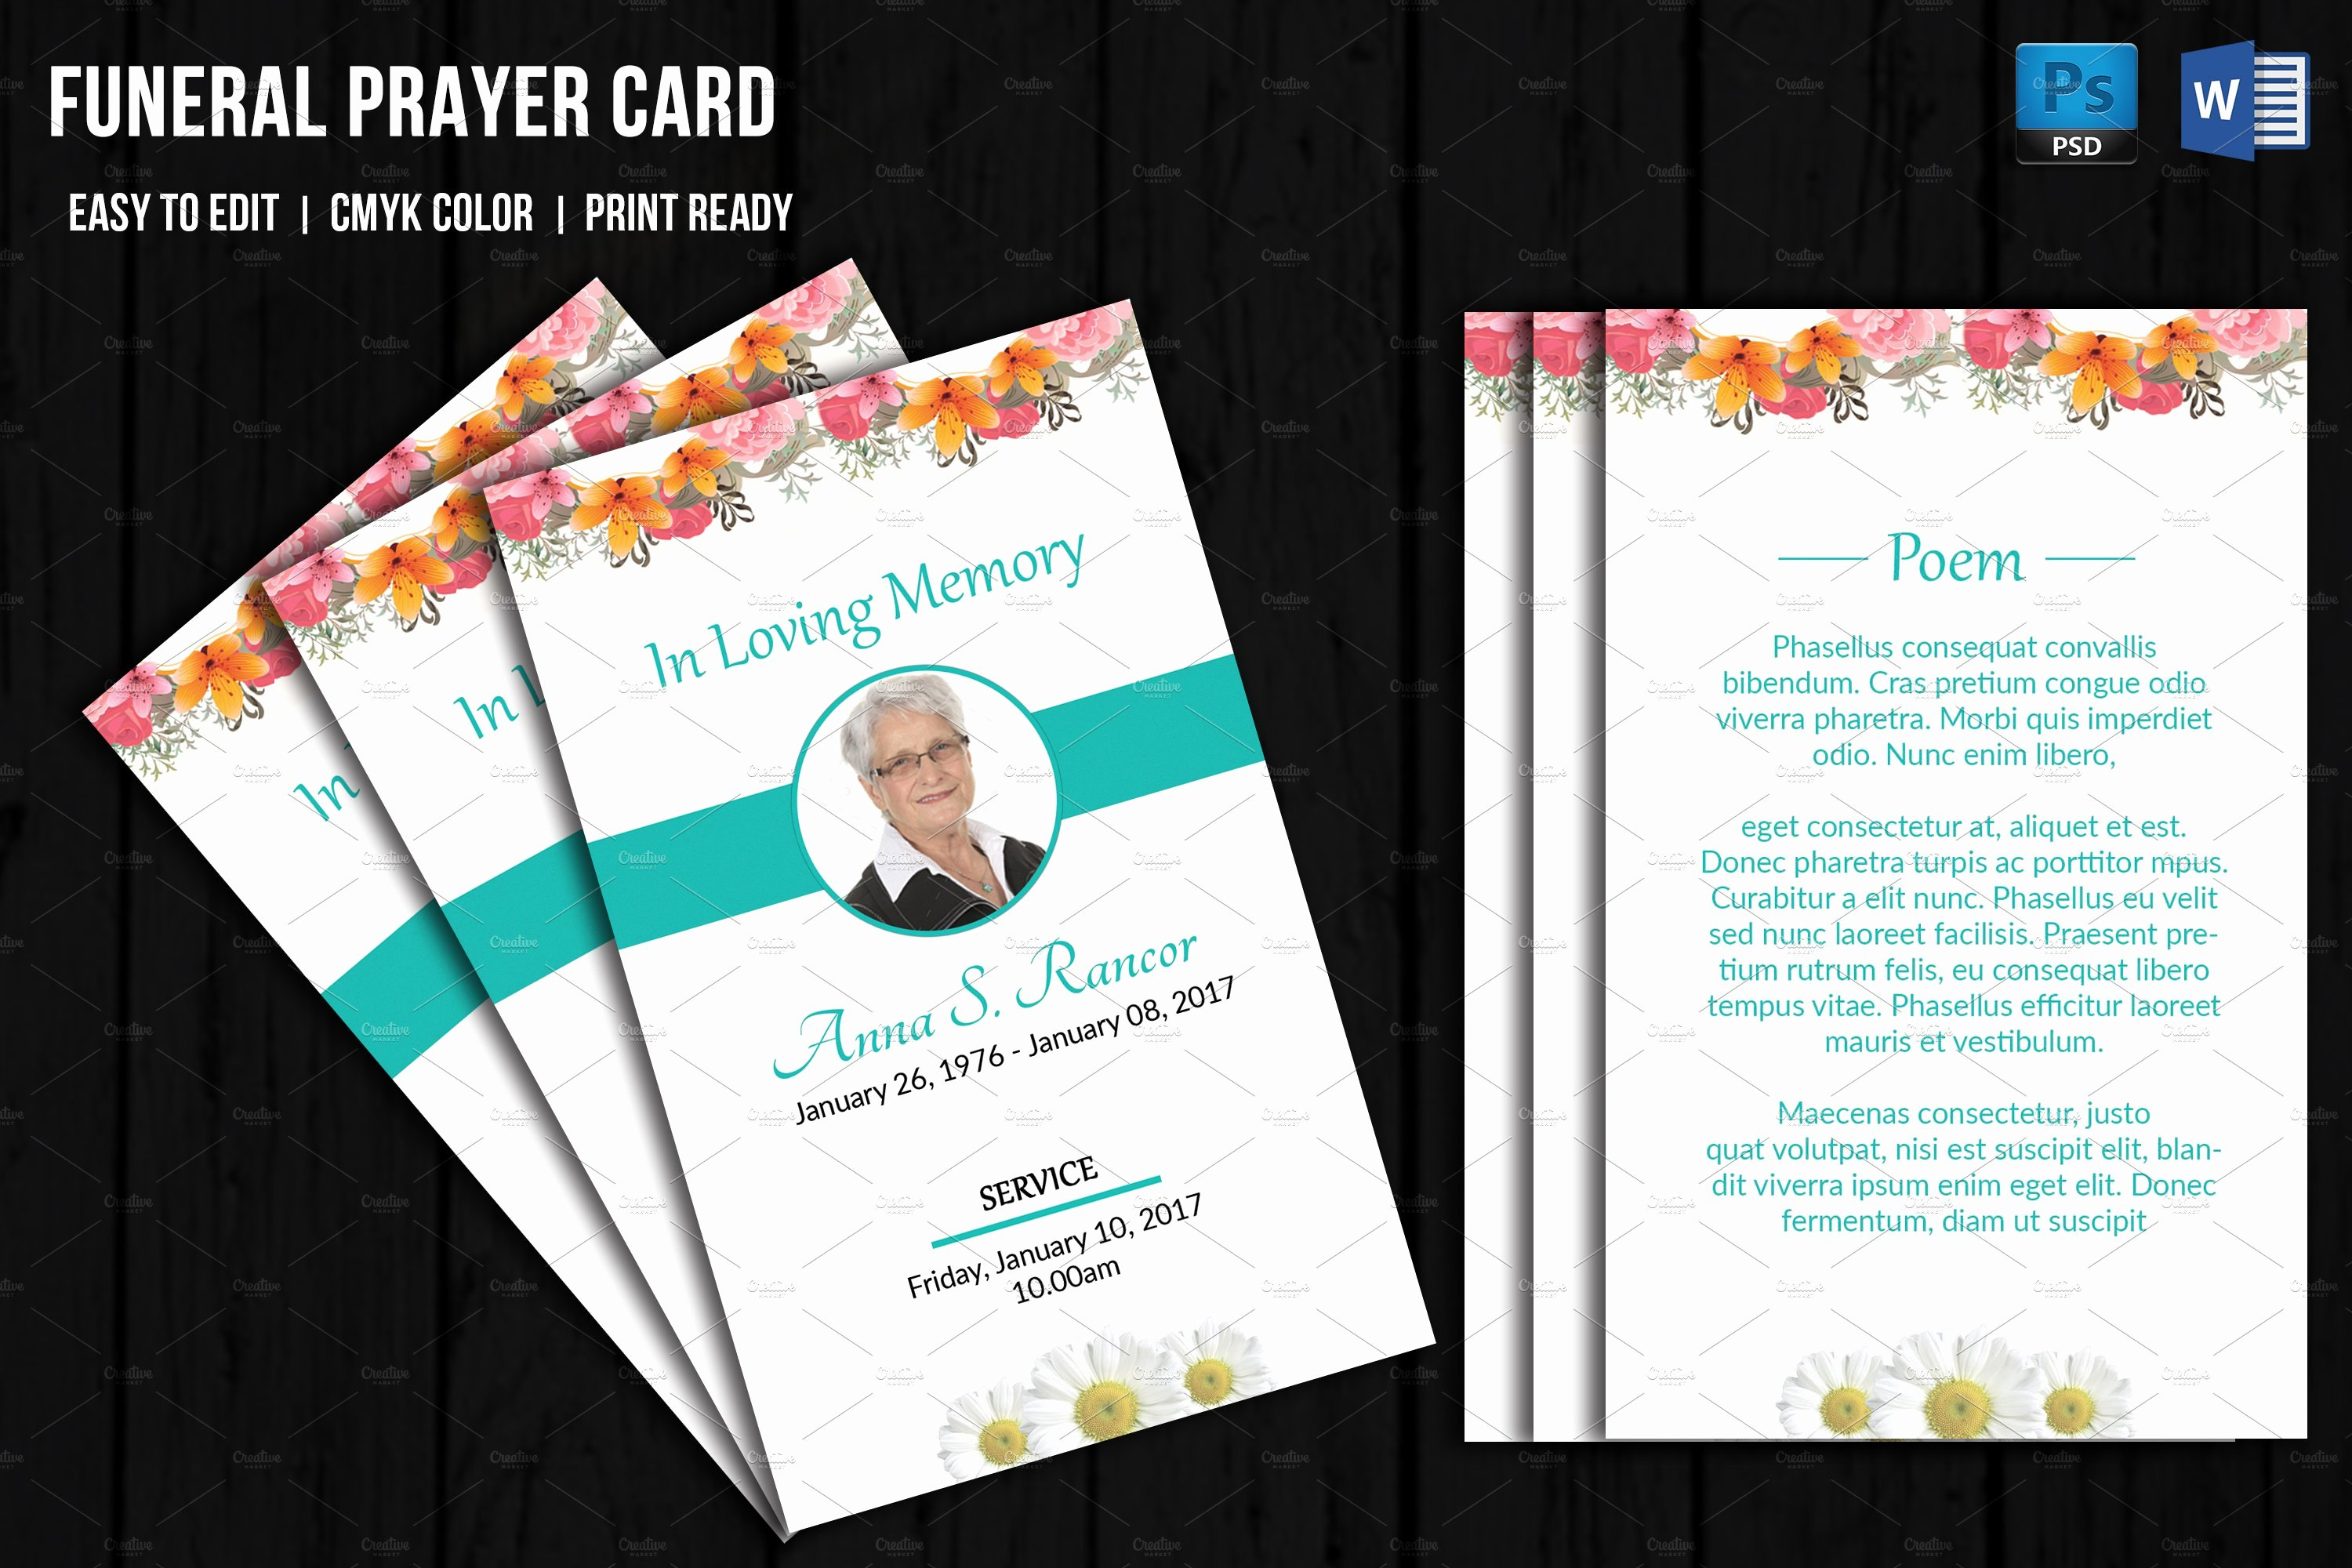 Funeral Prayer Card Template Free Inspirational Funeral Prayer Card Template V656 Card Templates